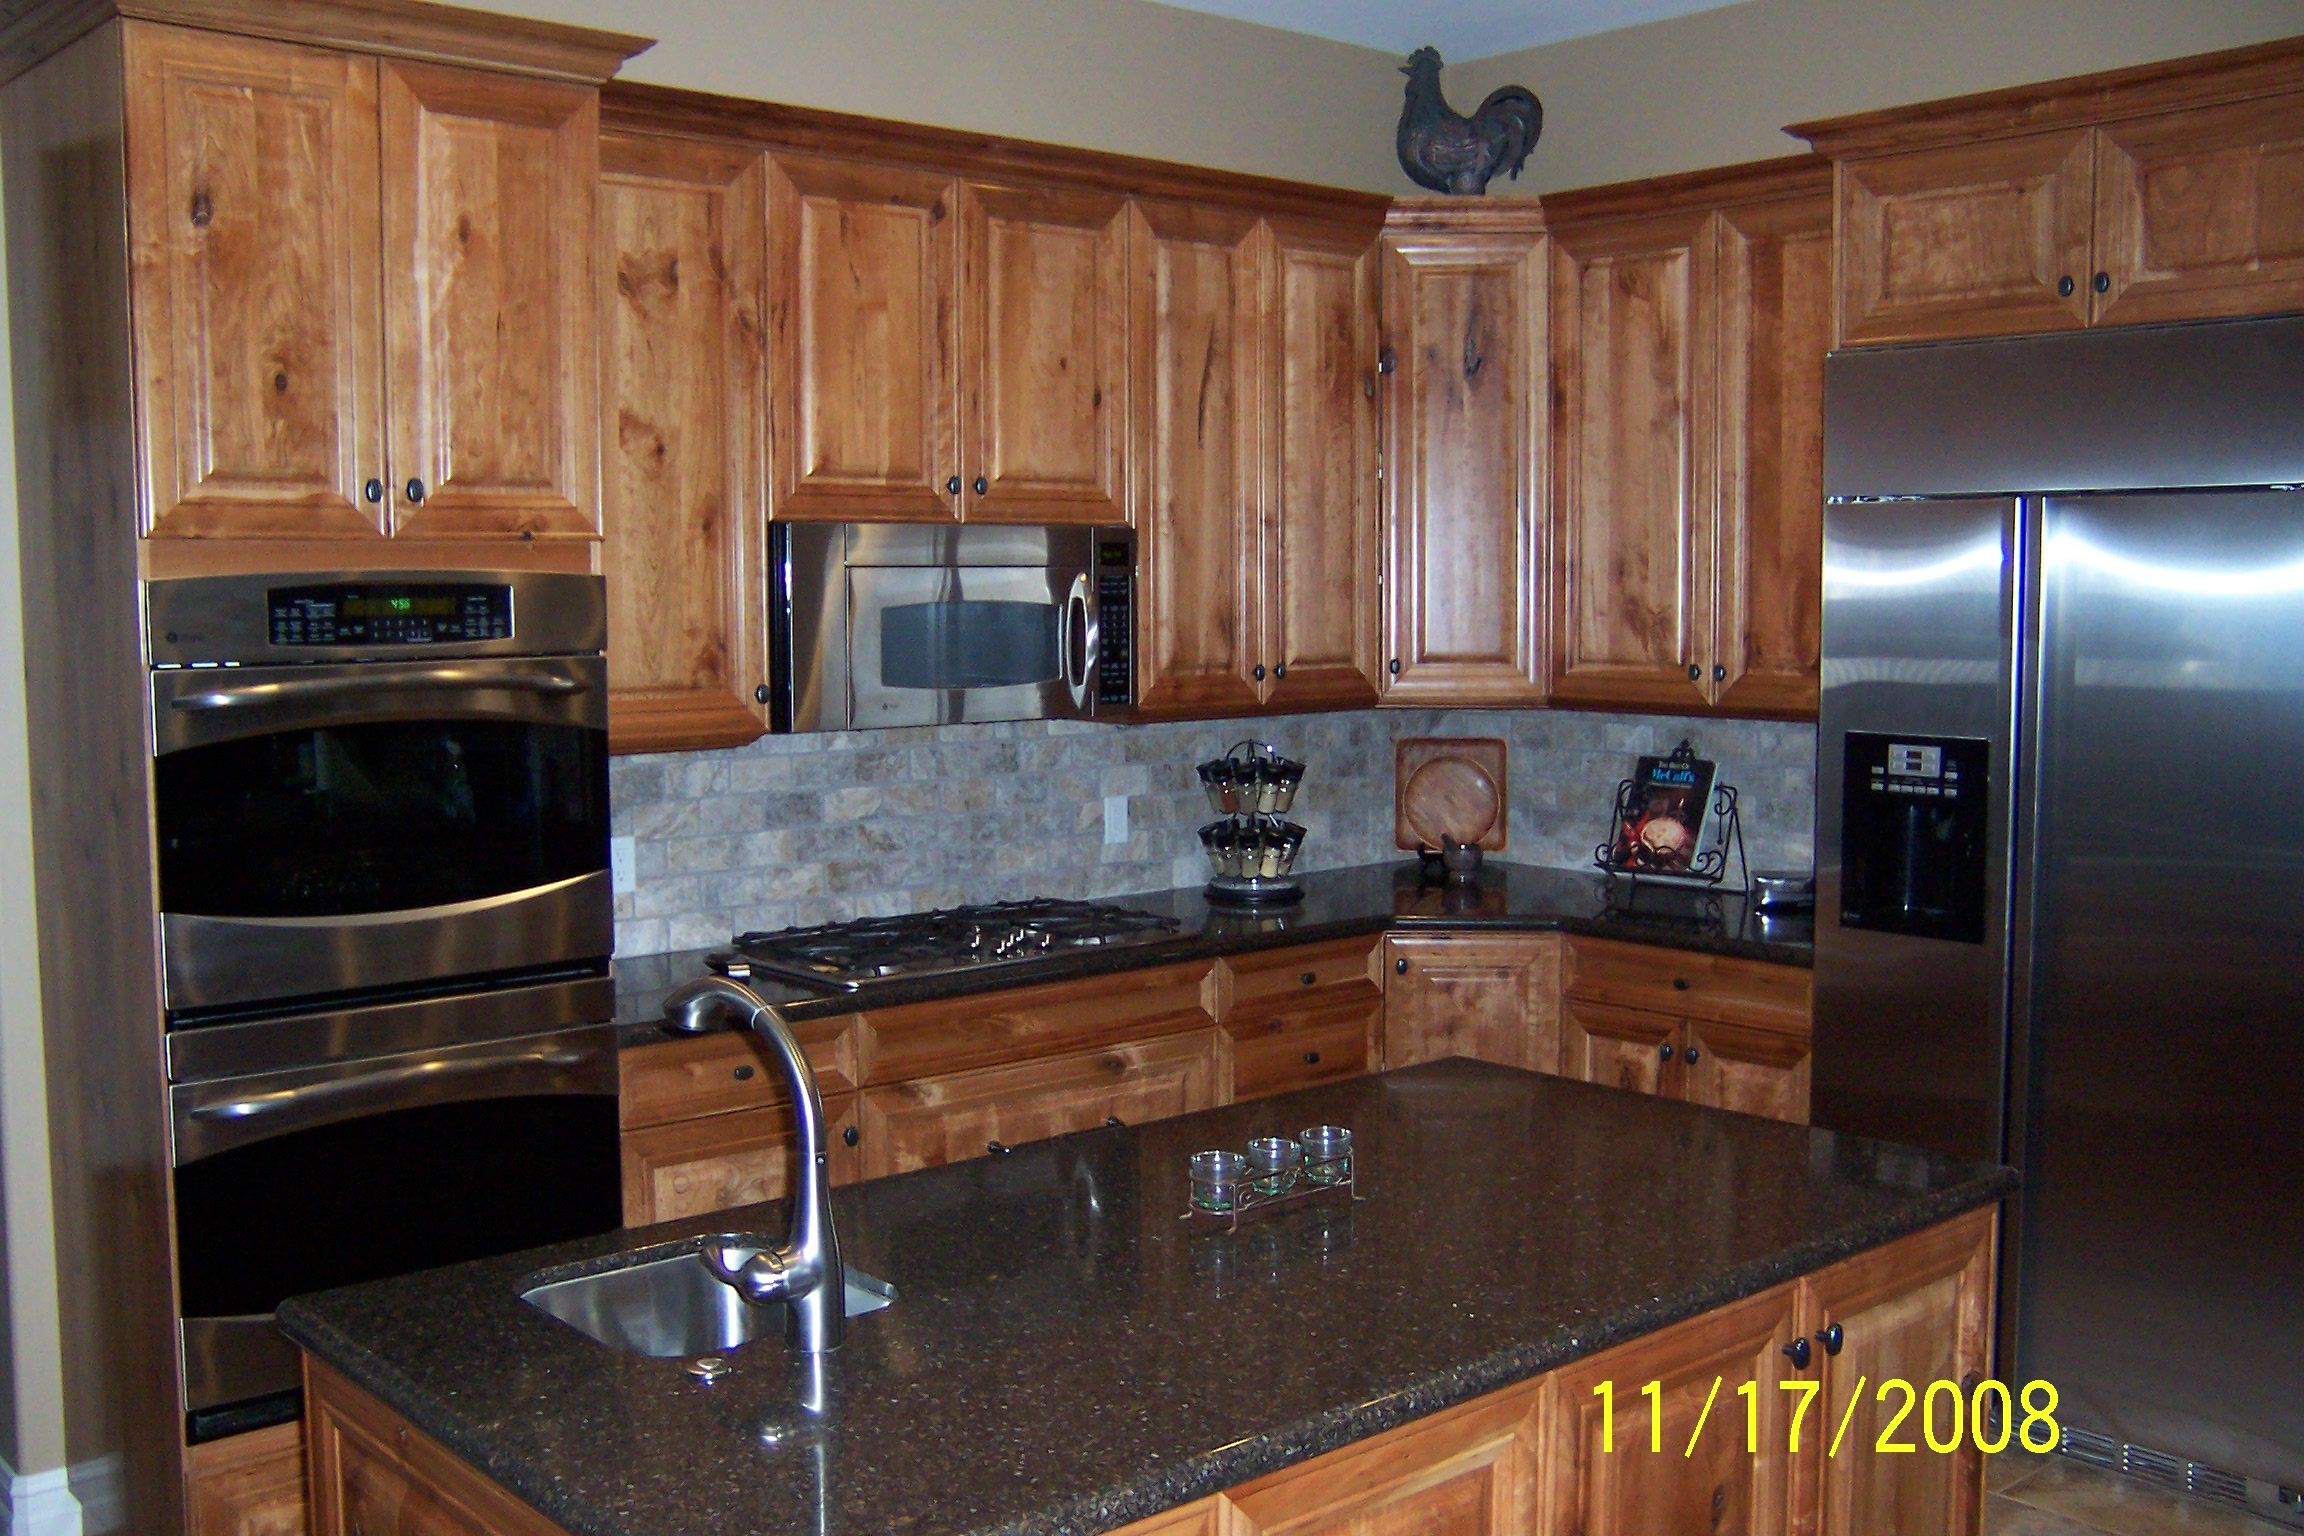 Knotty Cherry Cabinets Google Search Traditional Kitchen Cabinets Rustic Kitchen Cabinets Rustic Cherry Cabinets